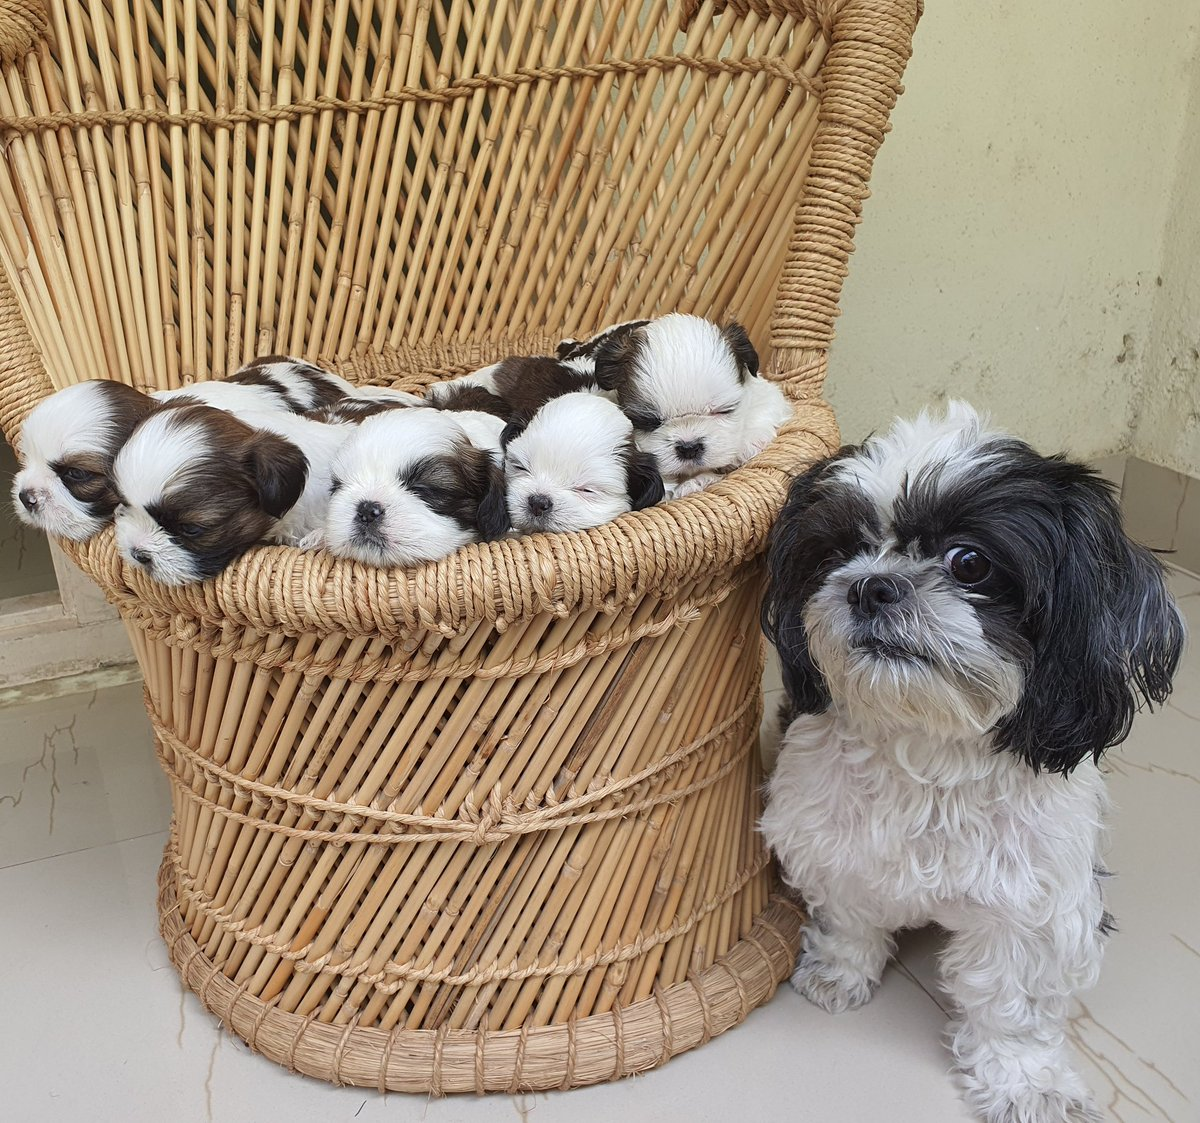 From being our baby to having babies!!!   Dec 20th, our princess, Suzie became a mommy to 5 beautiful and adorable babies!!! 👨🏿🤝👨🏻❤🐶  #shihtzu #shuhtzusofinstagram #shihtzupuppy #shihtzulove #gayparents #gaypetparents #suzie #baby #dogsofinstagram #doglovers #family